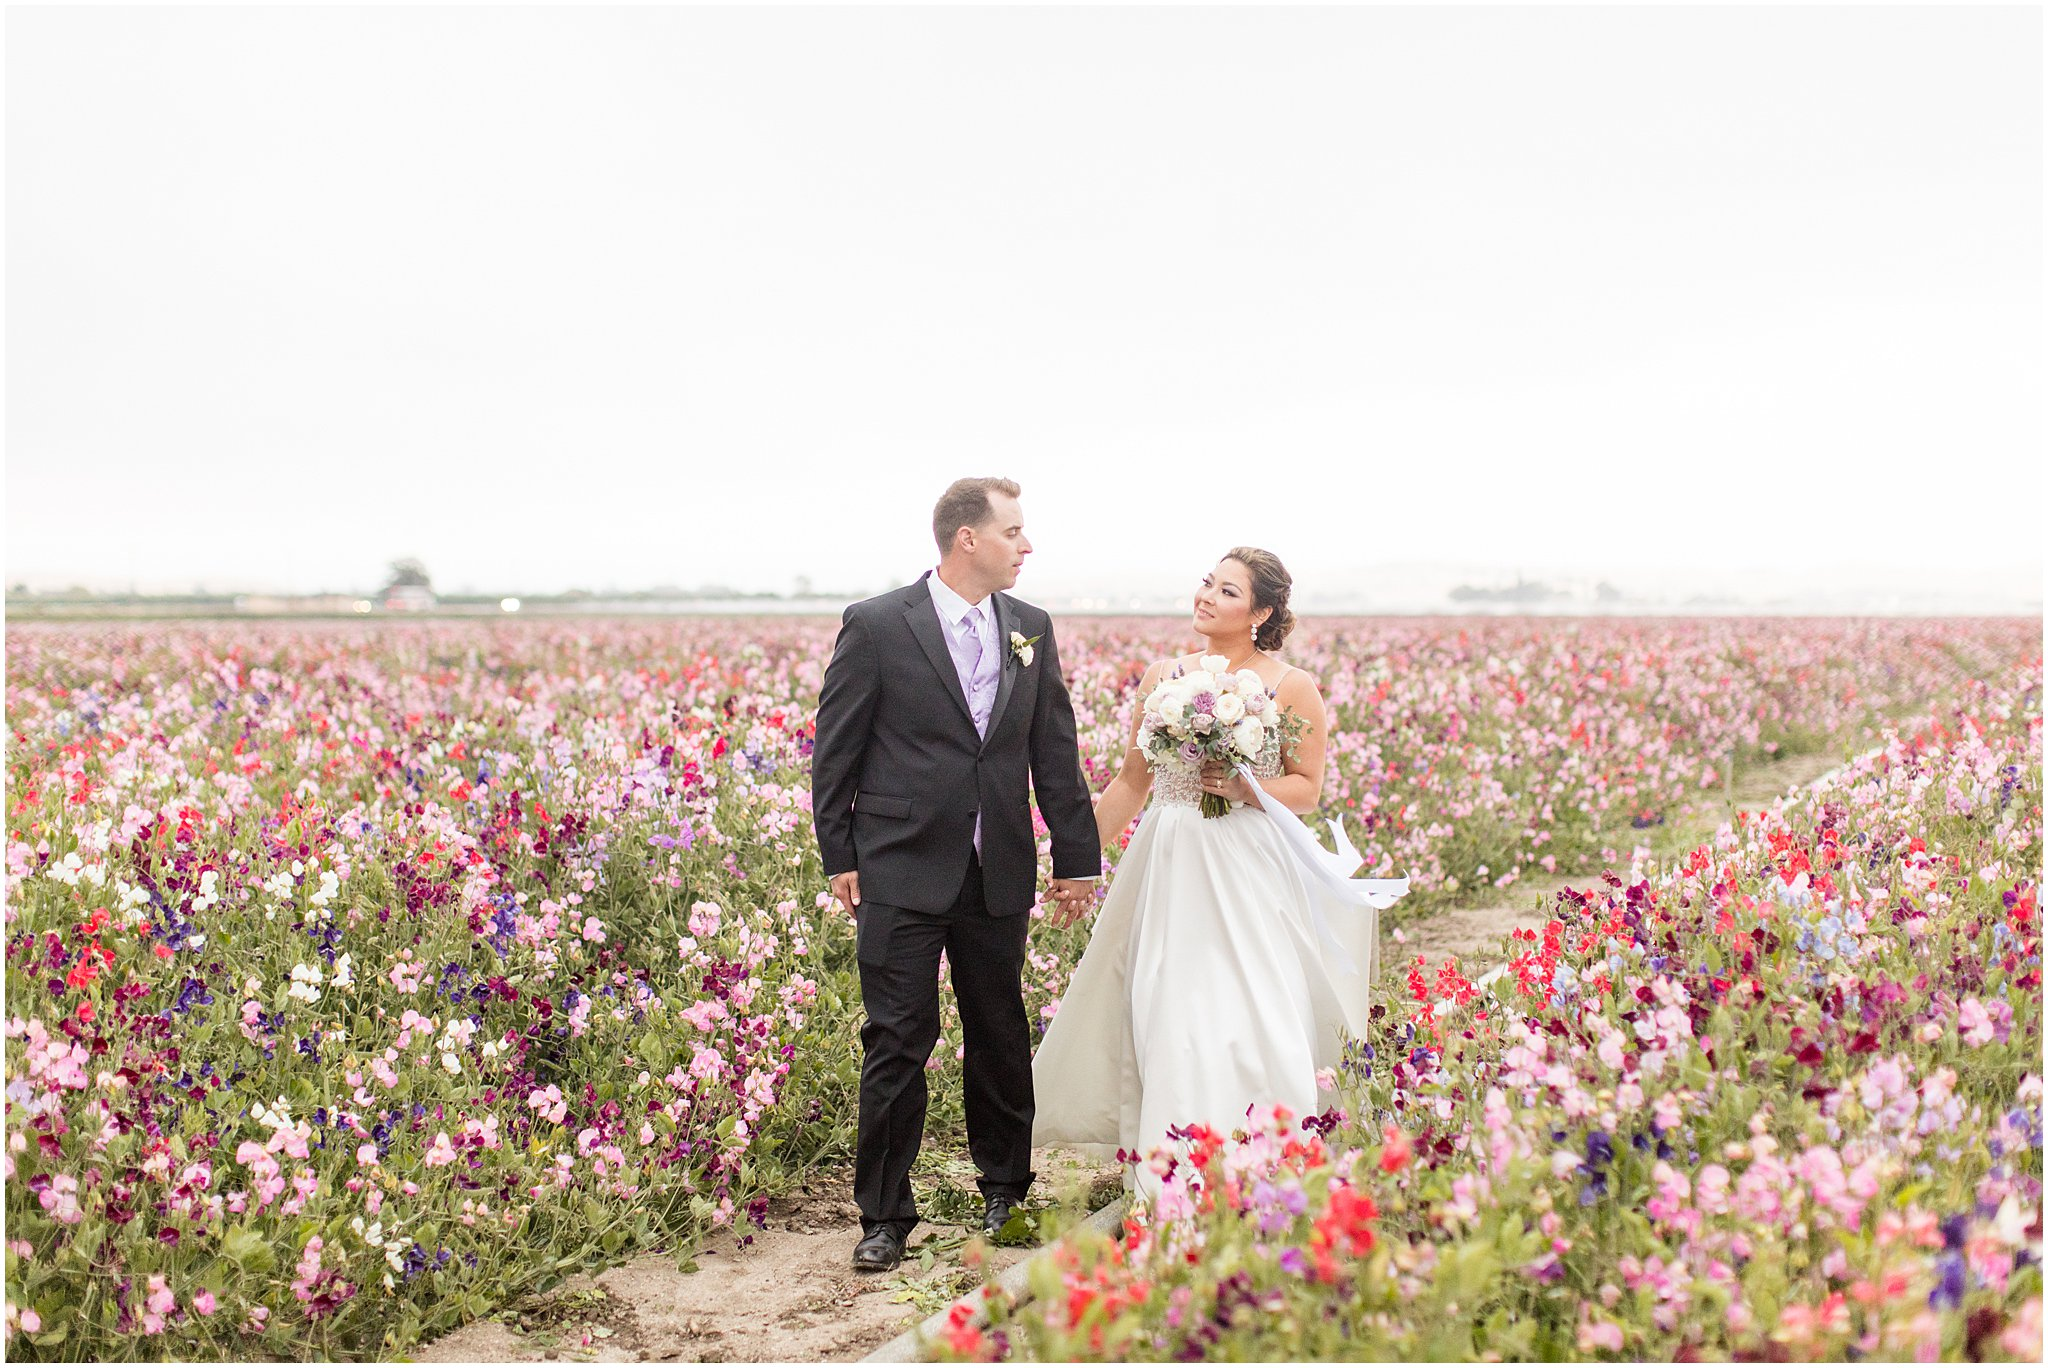 2019 wedding san juan bautista hacienda de leal vineyards bay area wedding photographer_0090.jpg